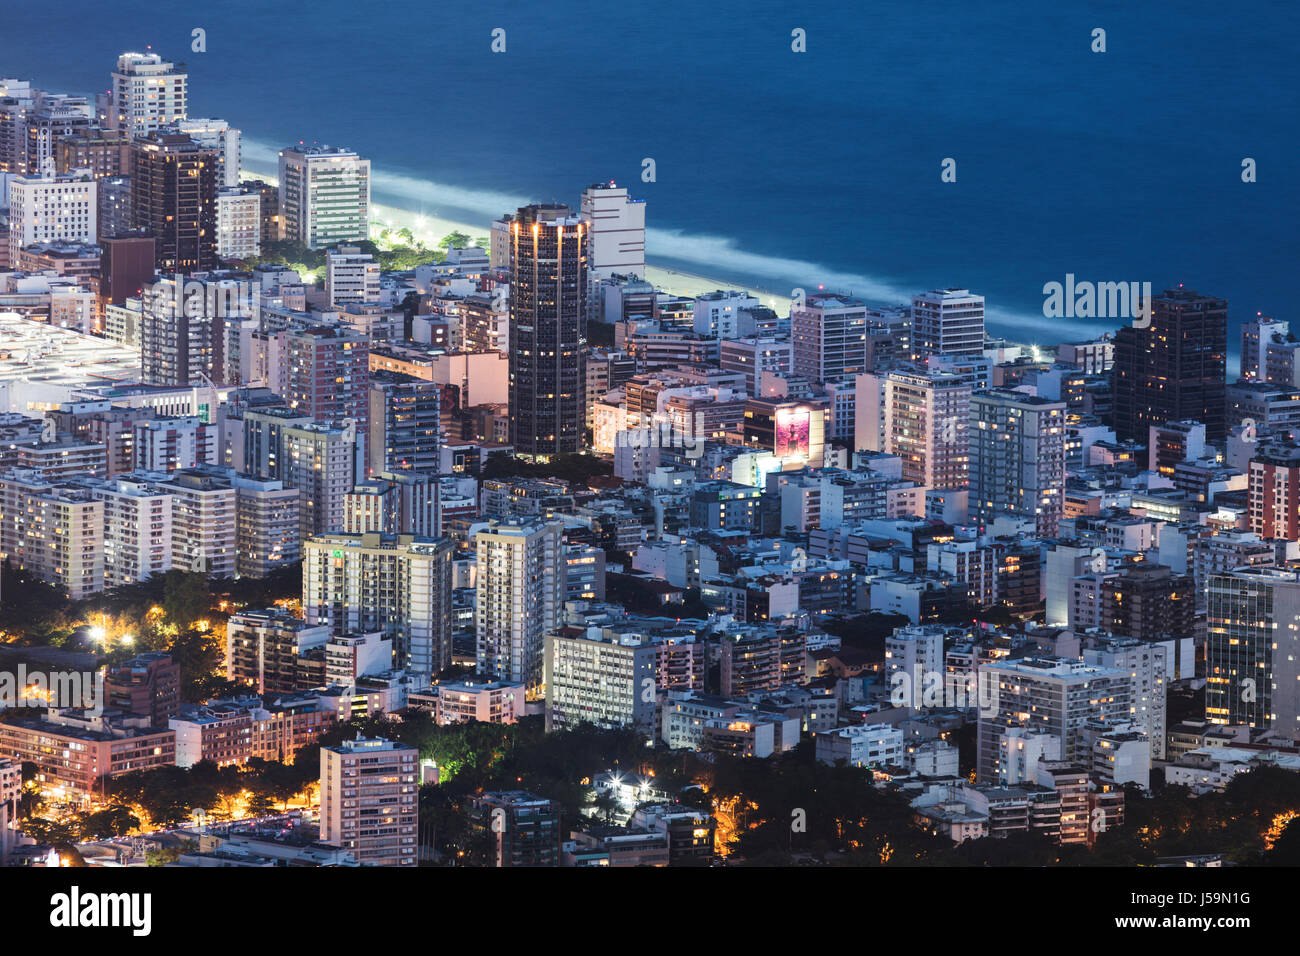 Ipanema / Leblon beach and neighbourhood in Rio, Brazil - Stock Image